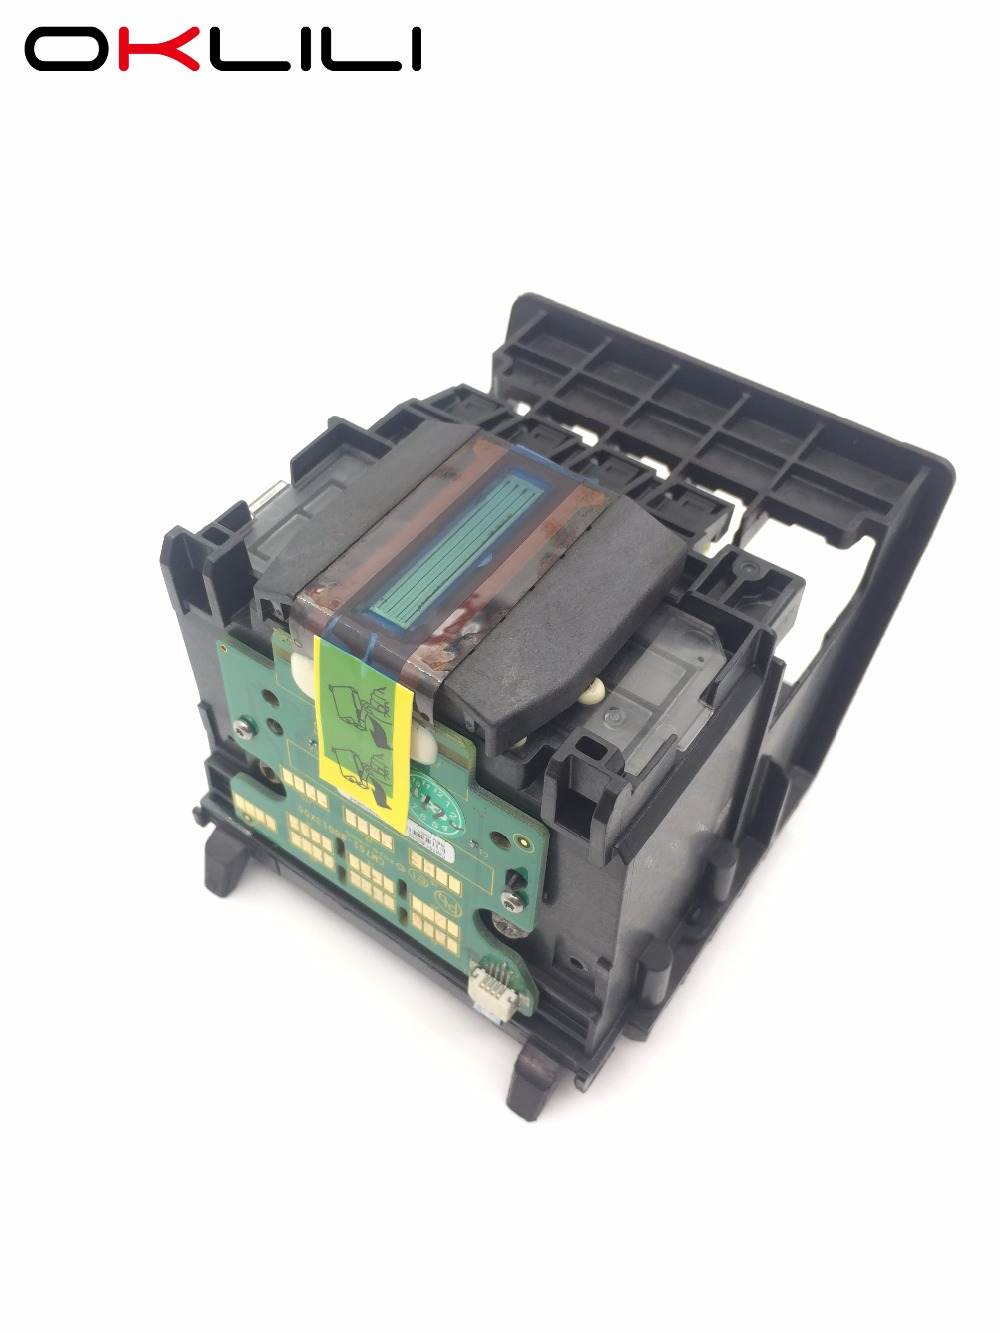 ORIGINAL CM751-80013A 950 951 950XL 951XL Printhead Print head for HP Pro 8100 8600 8610 8620 8625 8630 8700 251DW 251 276 276DW new printhead for hp 950 951 8100 8600 251dw 251 276 276dw 8610 8620 8630 8640 8660 8700 8615 8625 950xl 951xl cm751 80013a